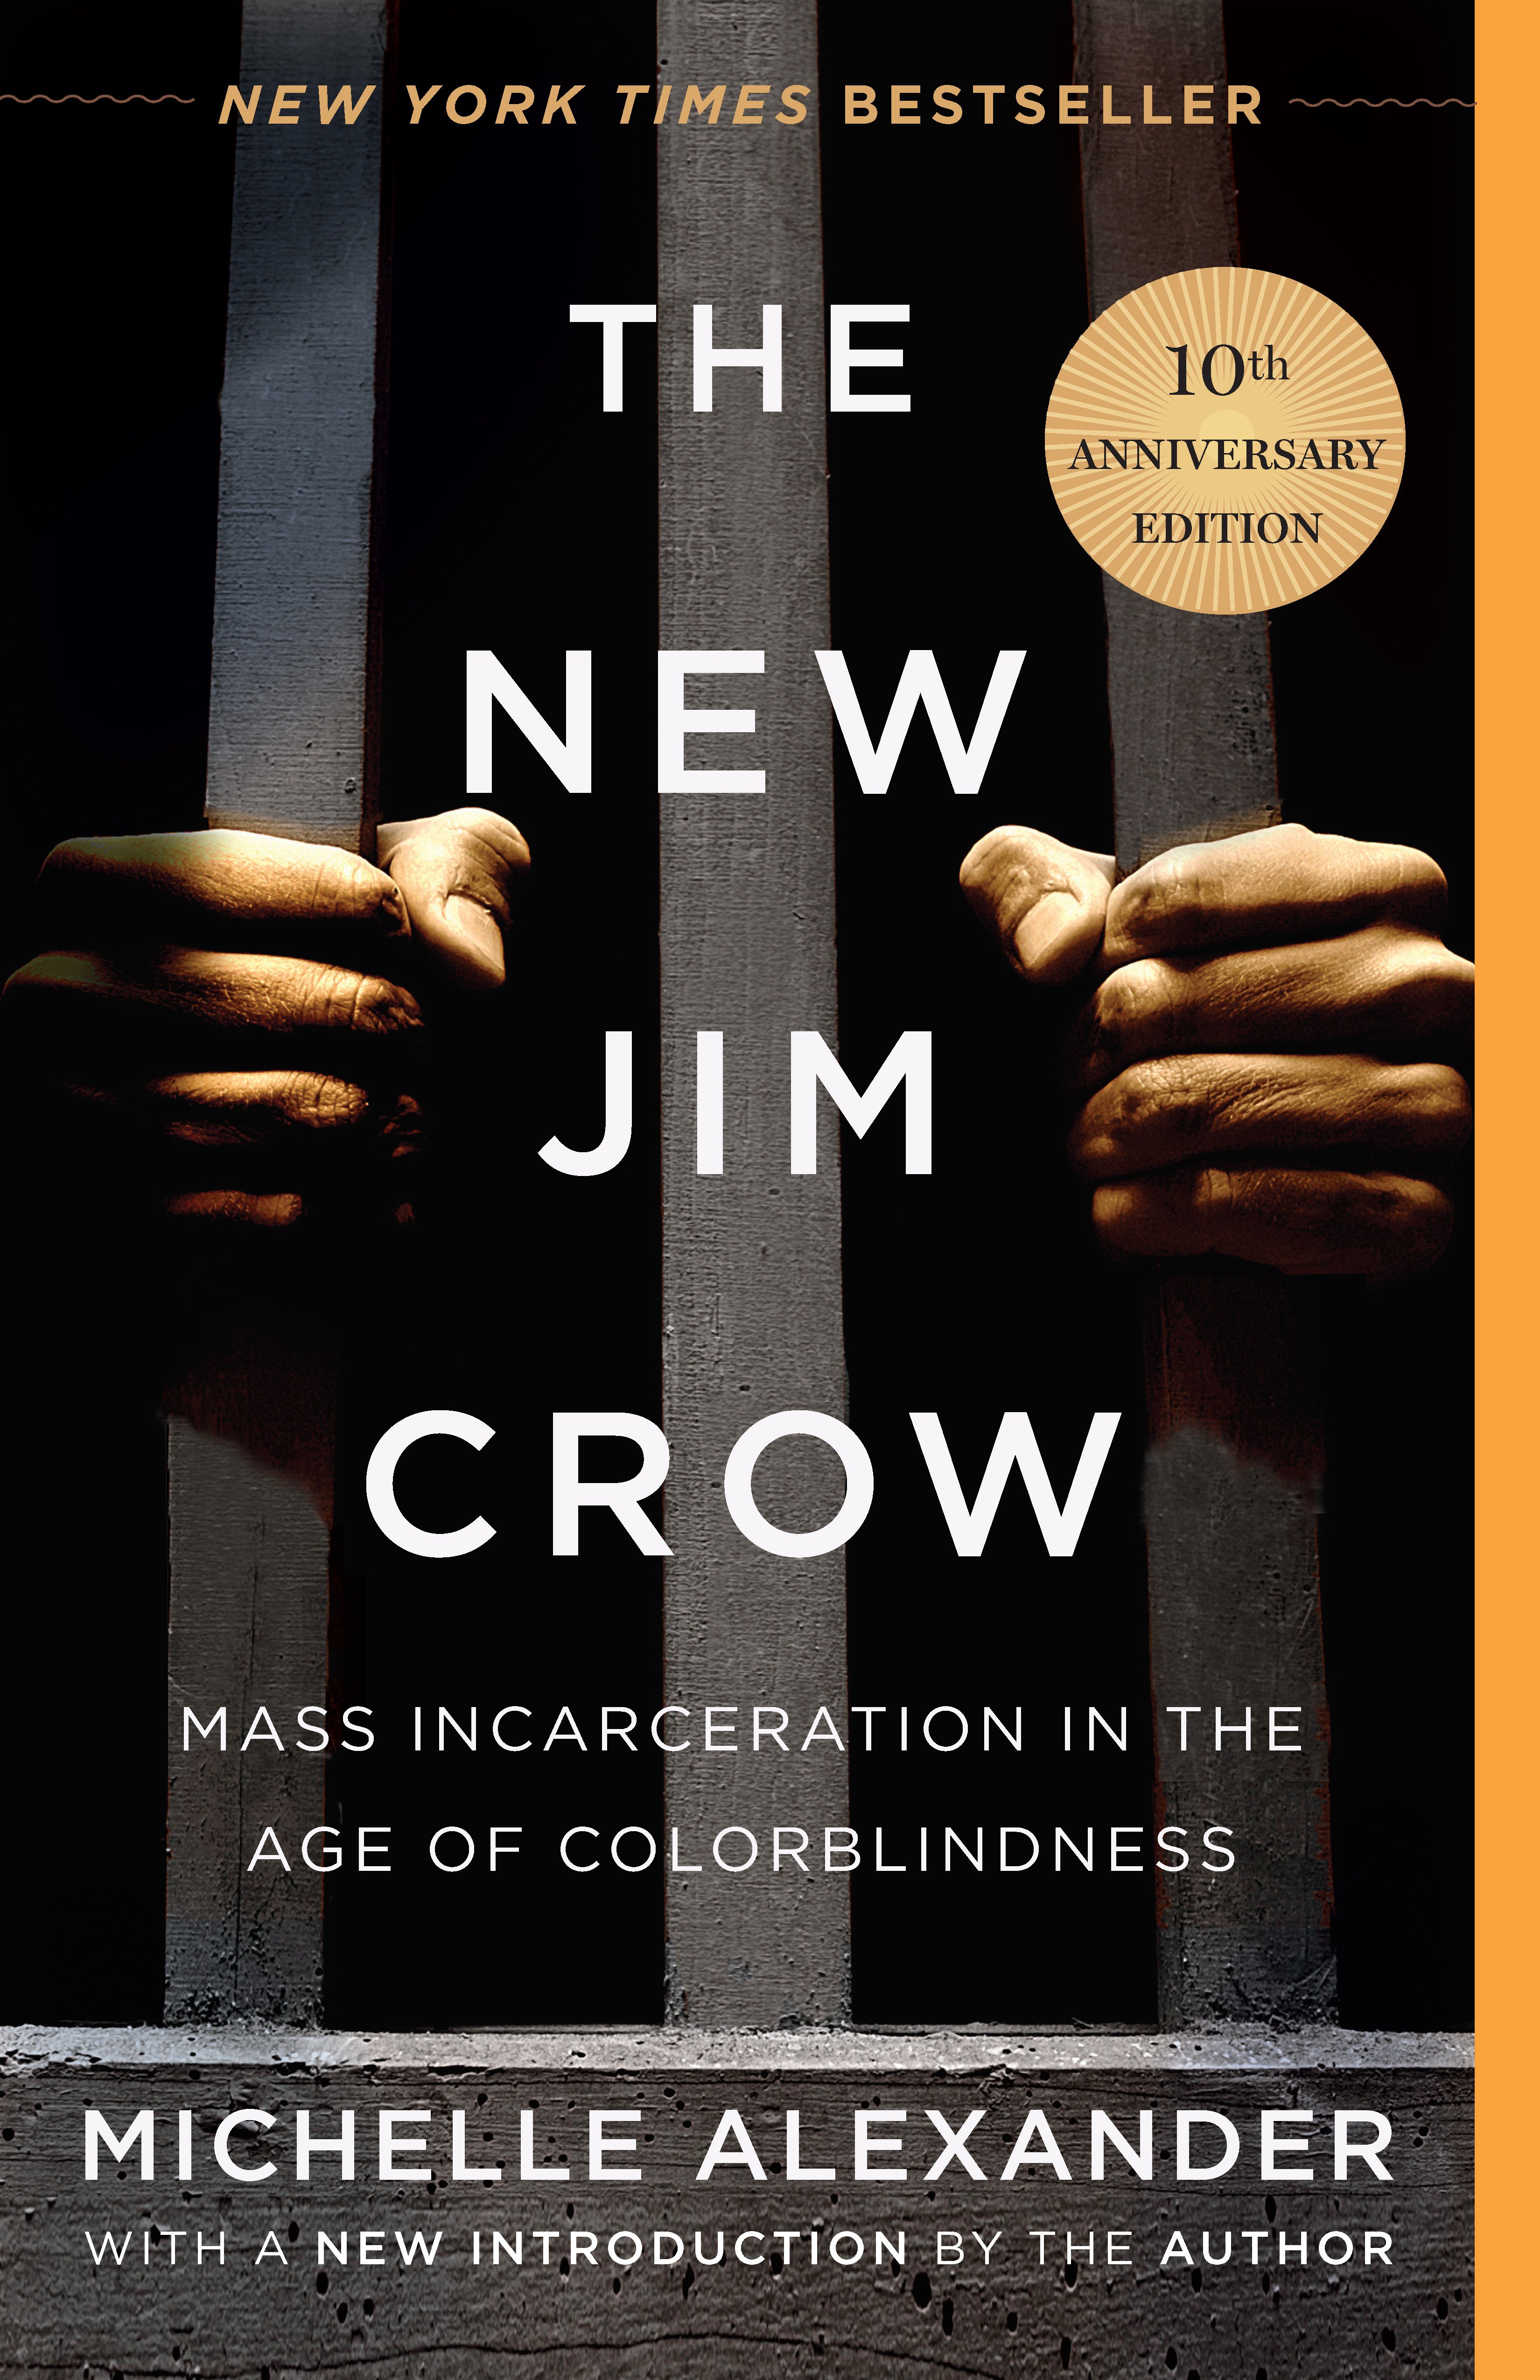 Cover image for The New Jim Crow [electronic resource] : Mass Incarceration in the Age of Colorblindness